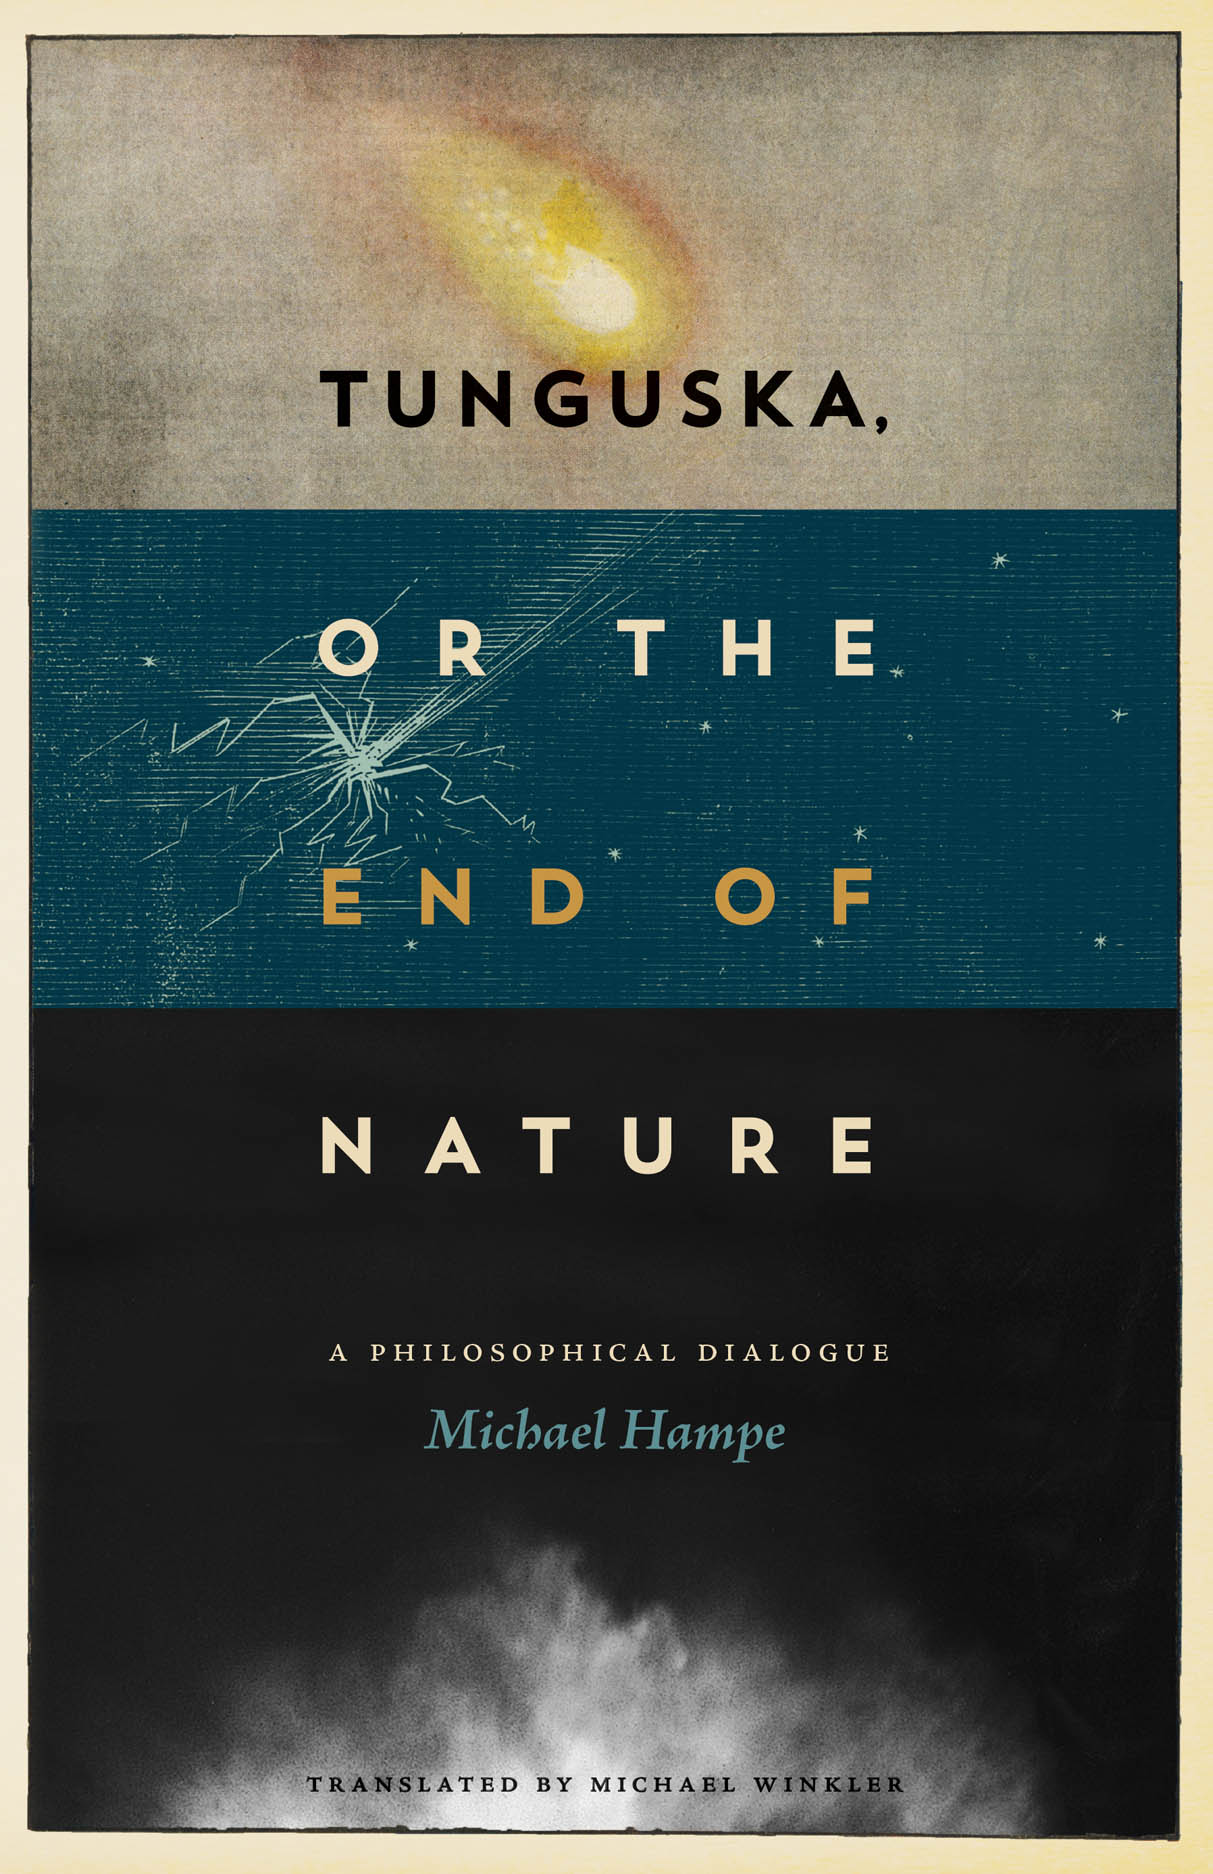 Tunguska, or the End of Nature: A Philosophical Dialogue